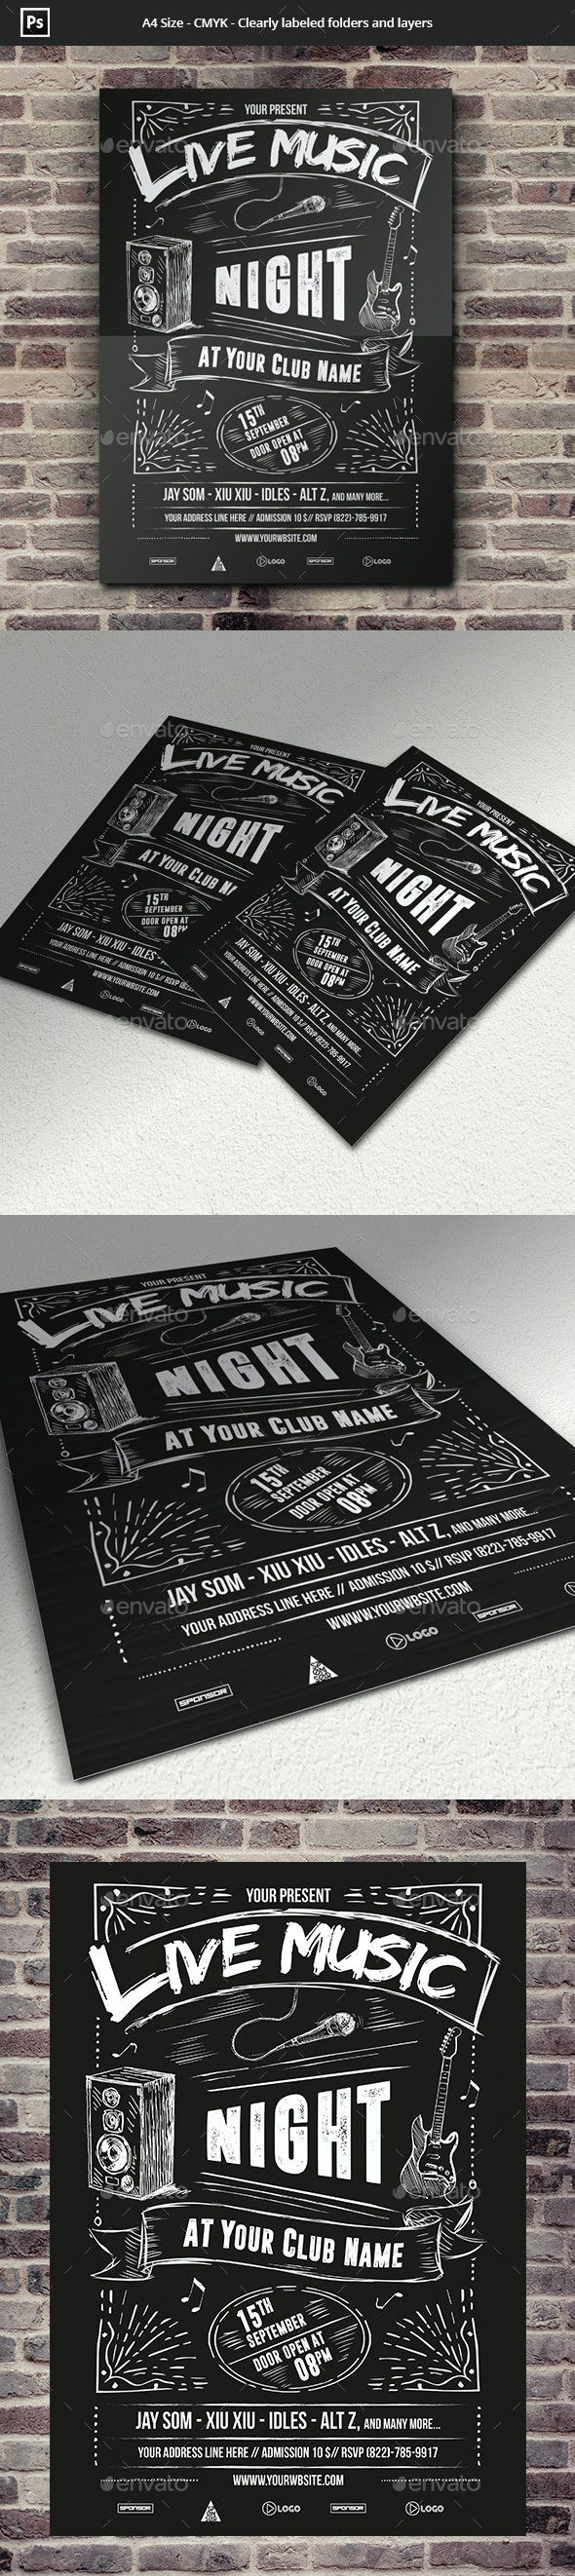 Live Music Flyer Template - Concerts Events